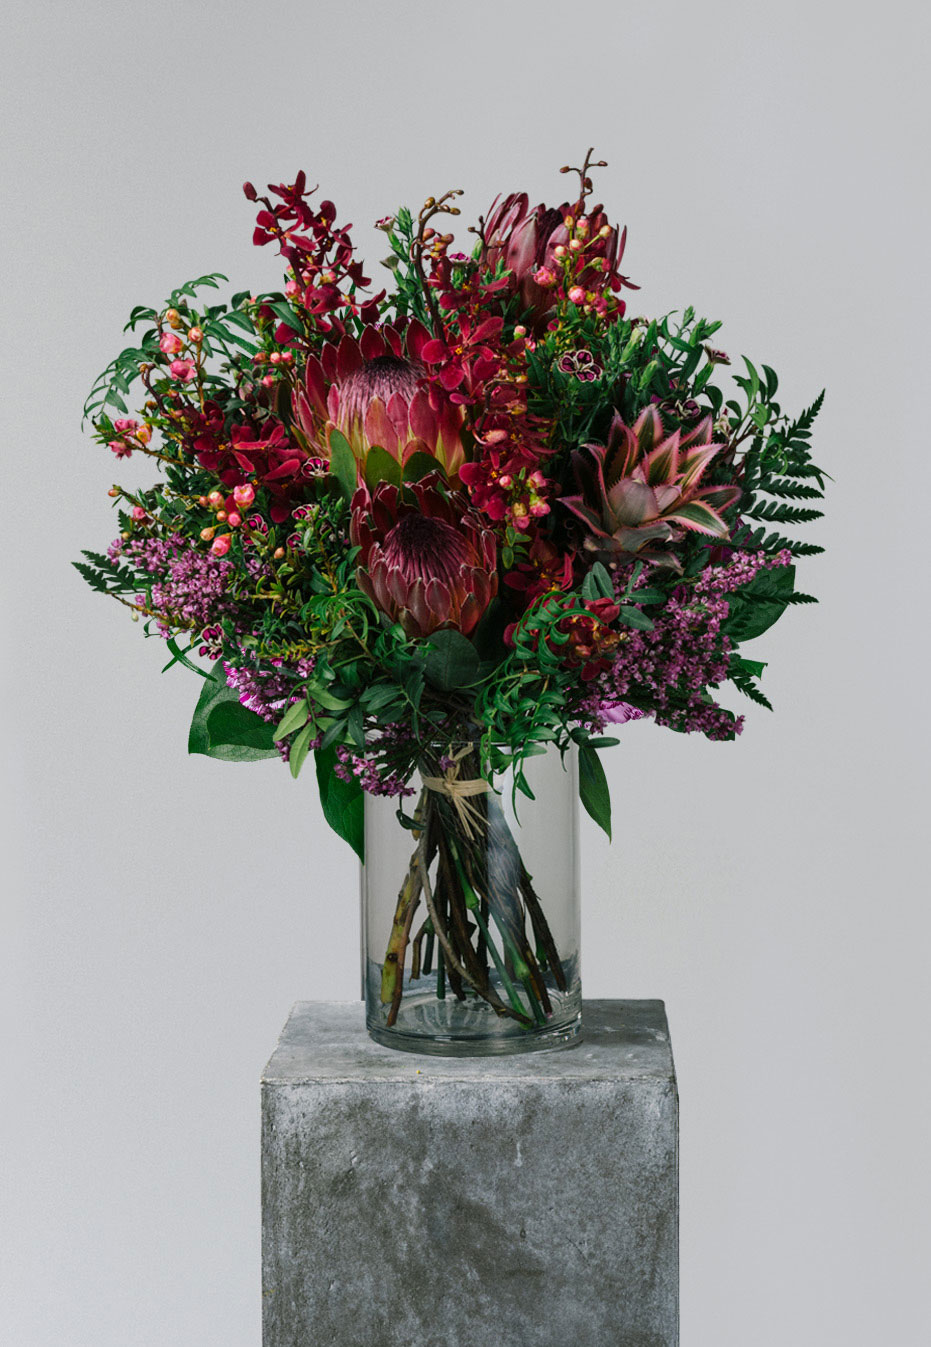 flower bouquet of protea and carnation by flannel flowers